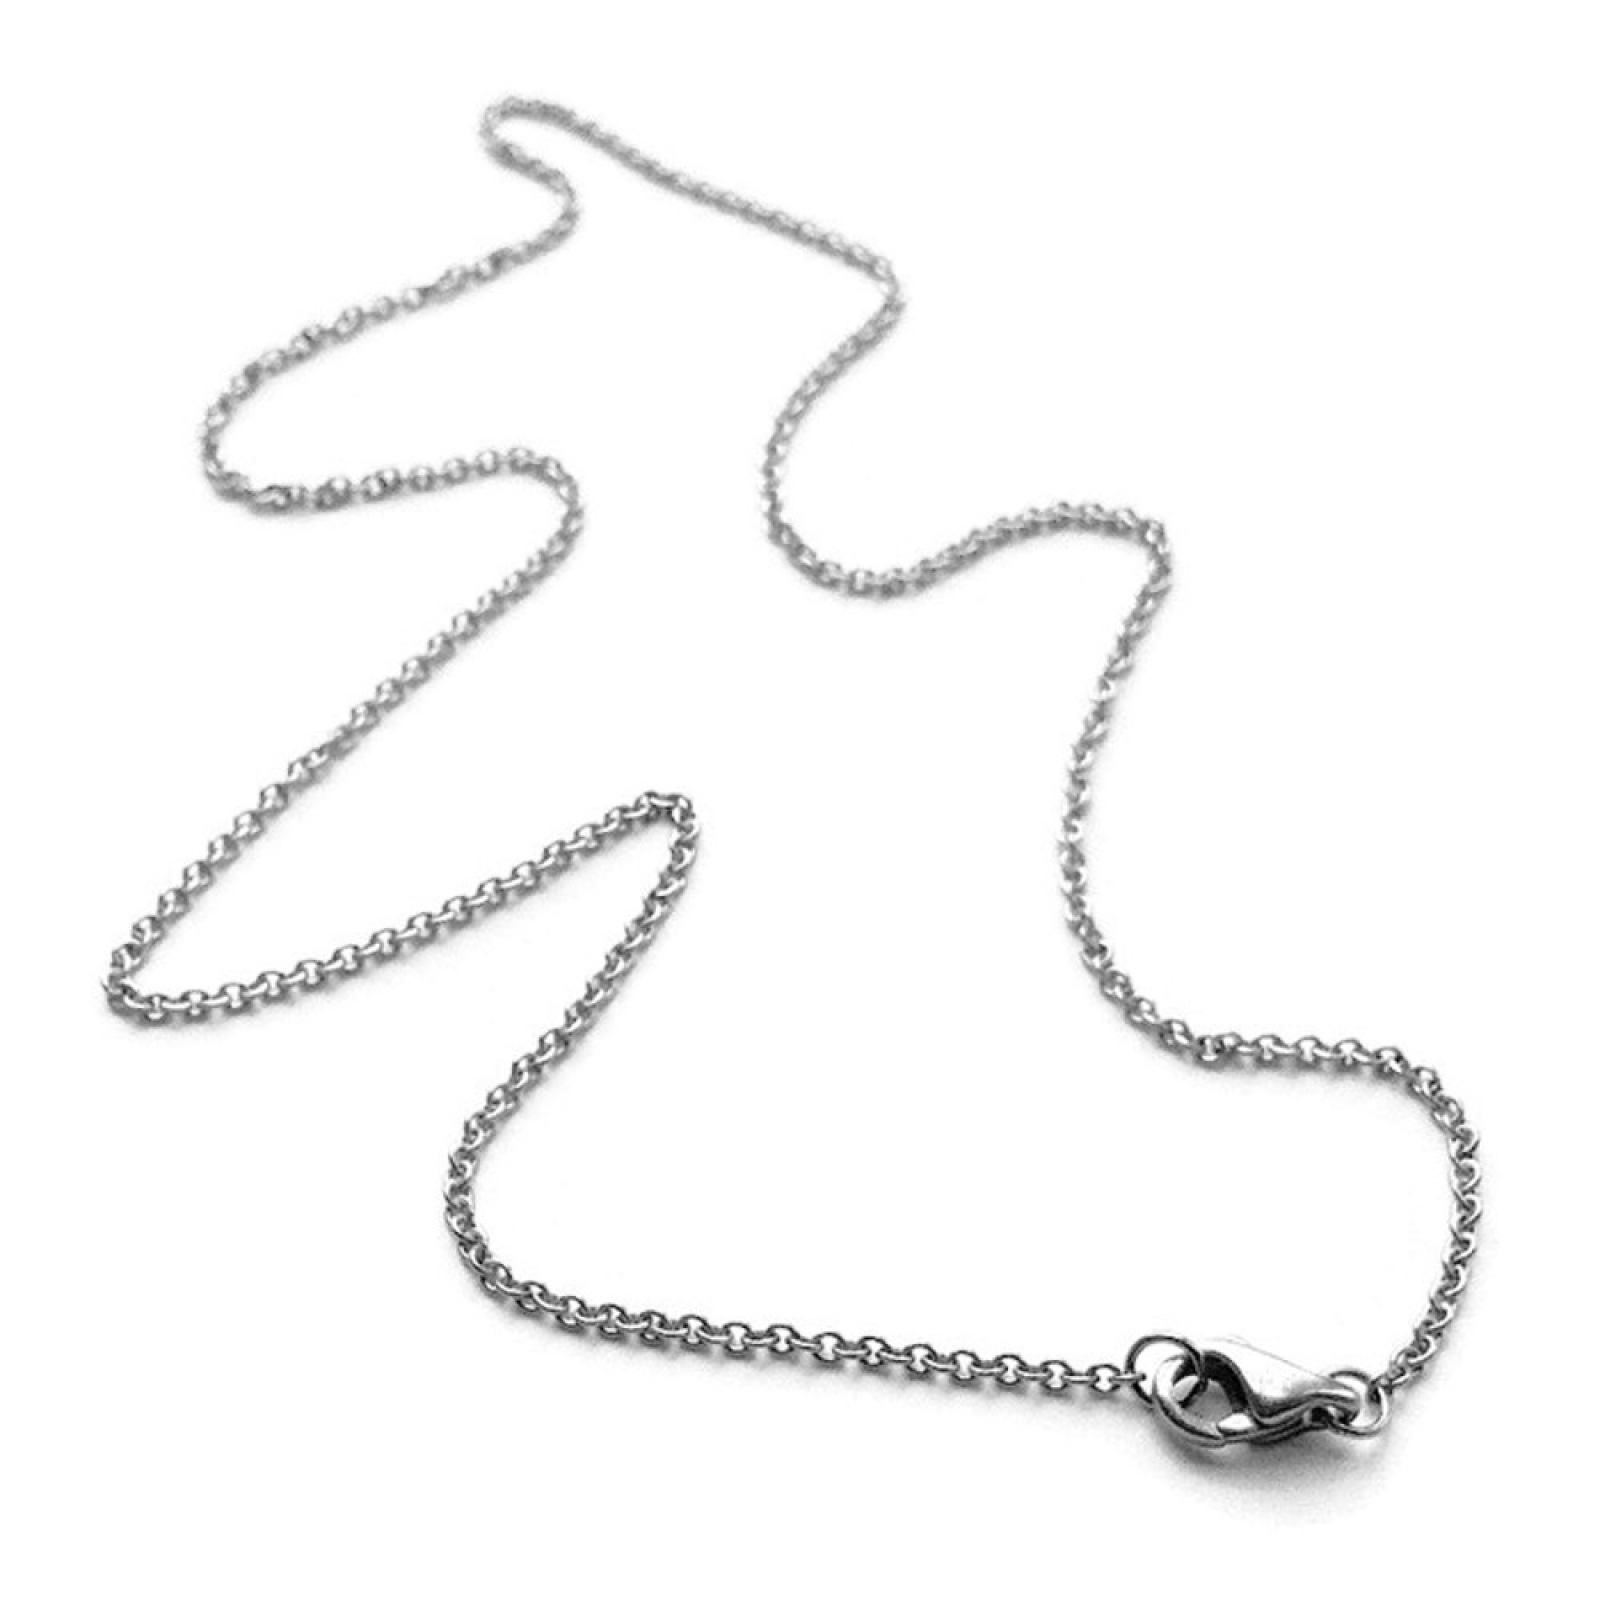 16 to 24 Inch Necklace Chain for Her Silver Steel Thin Cord ...